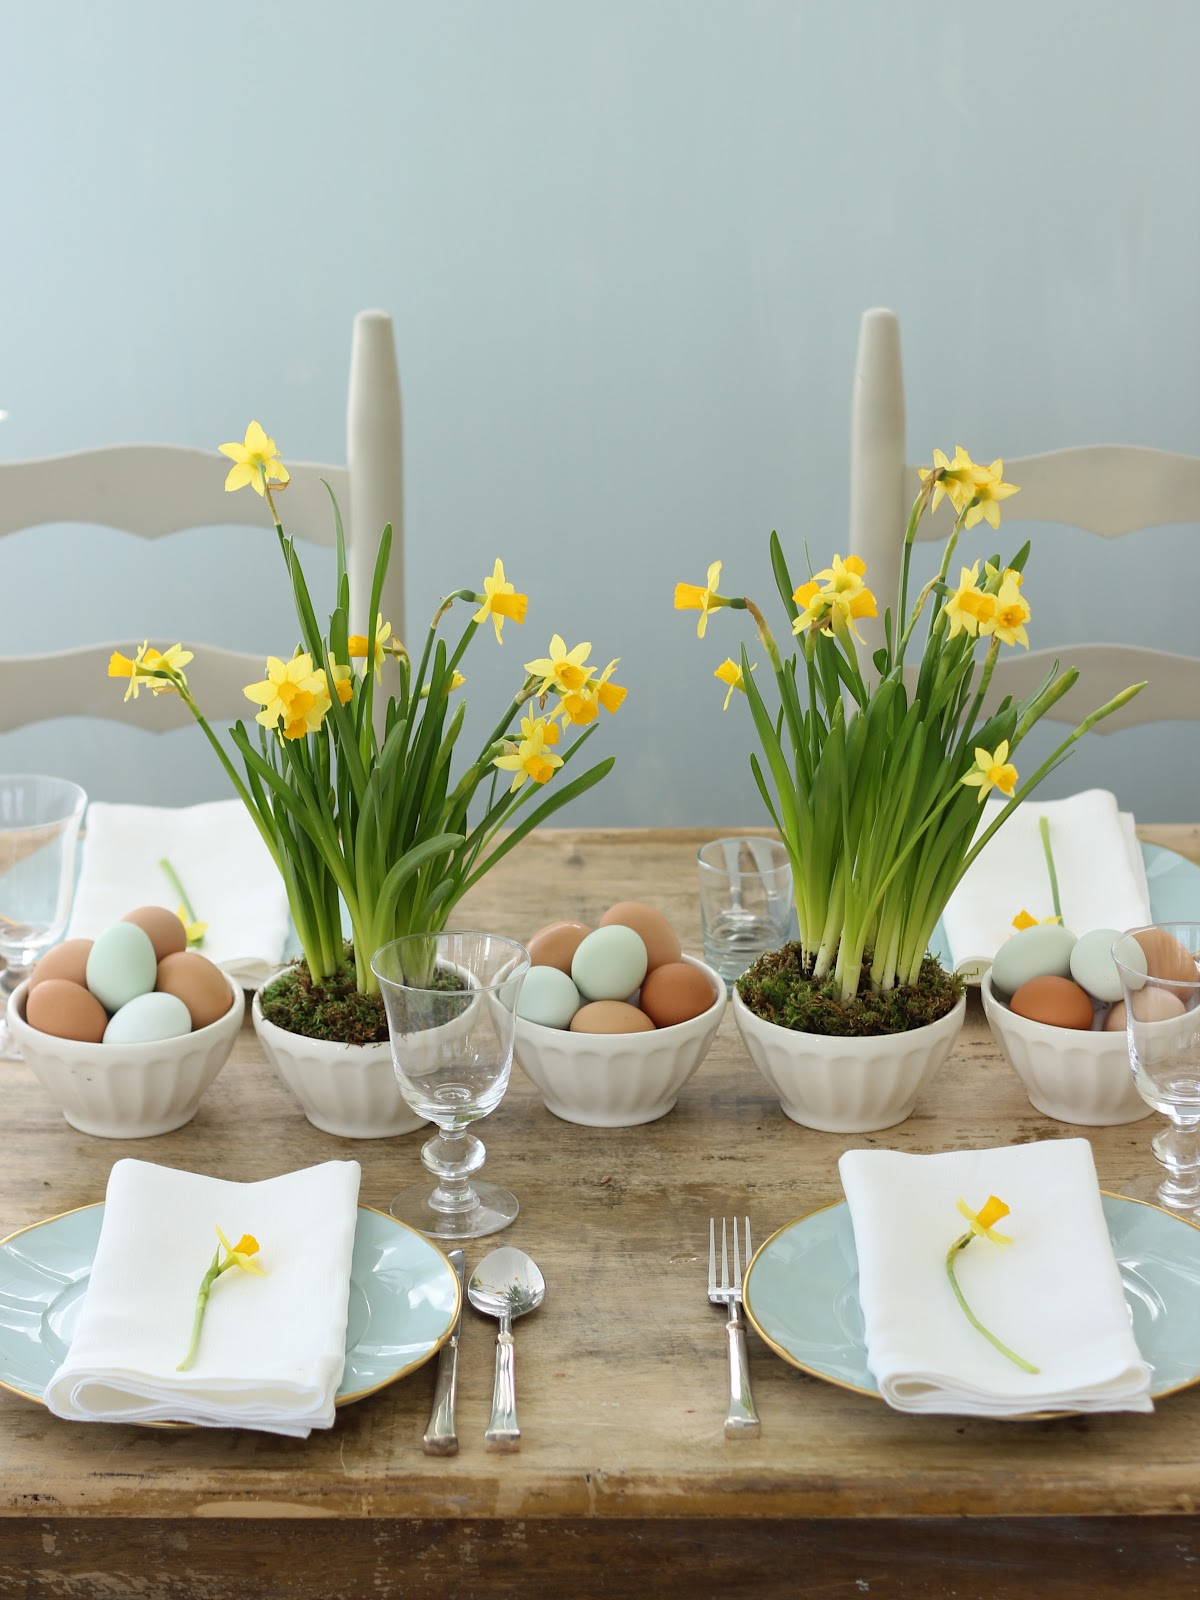 Attractive I Designed A Symmetrical, Balanced Centerpiece By Lining Up Bowls Of  Planted Daffodils And Pale Blue And Brown Eggs. The Mix Of Powder Blue And  Yellow Is ...